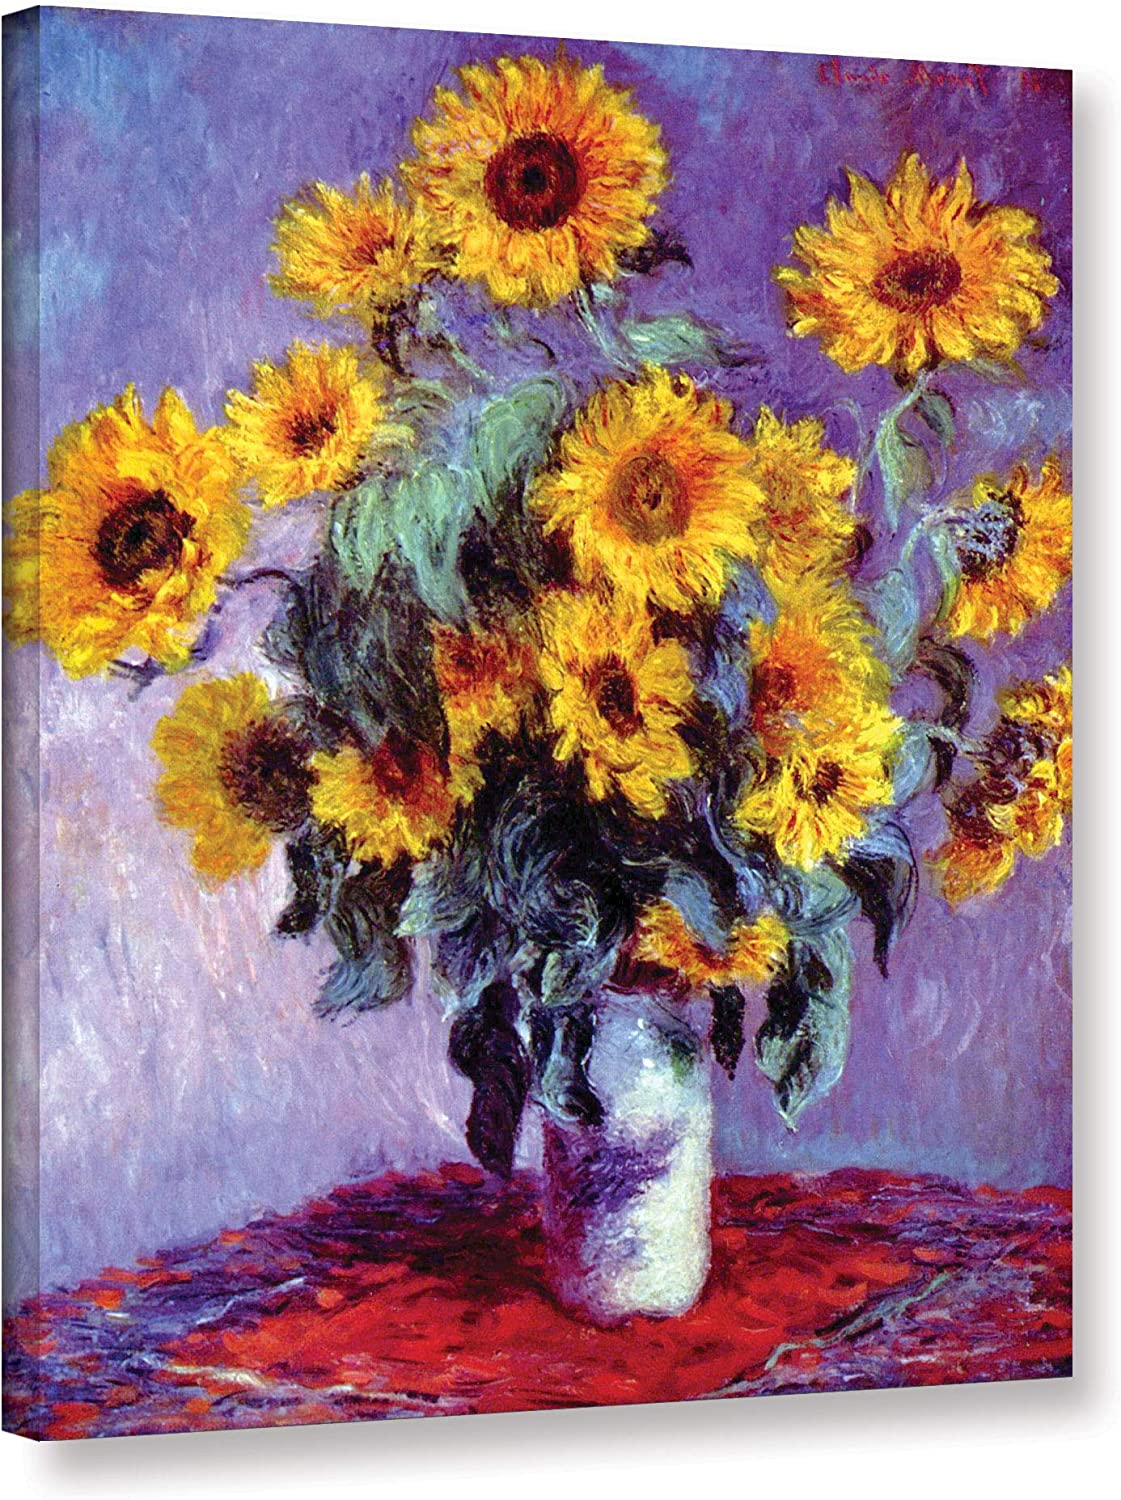 ArtWall Sunflowers by Claude Monet Gallery Wrapped Canvas, 24 by 32-Inch